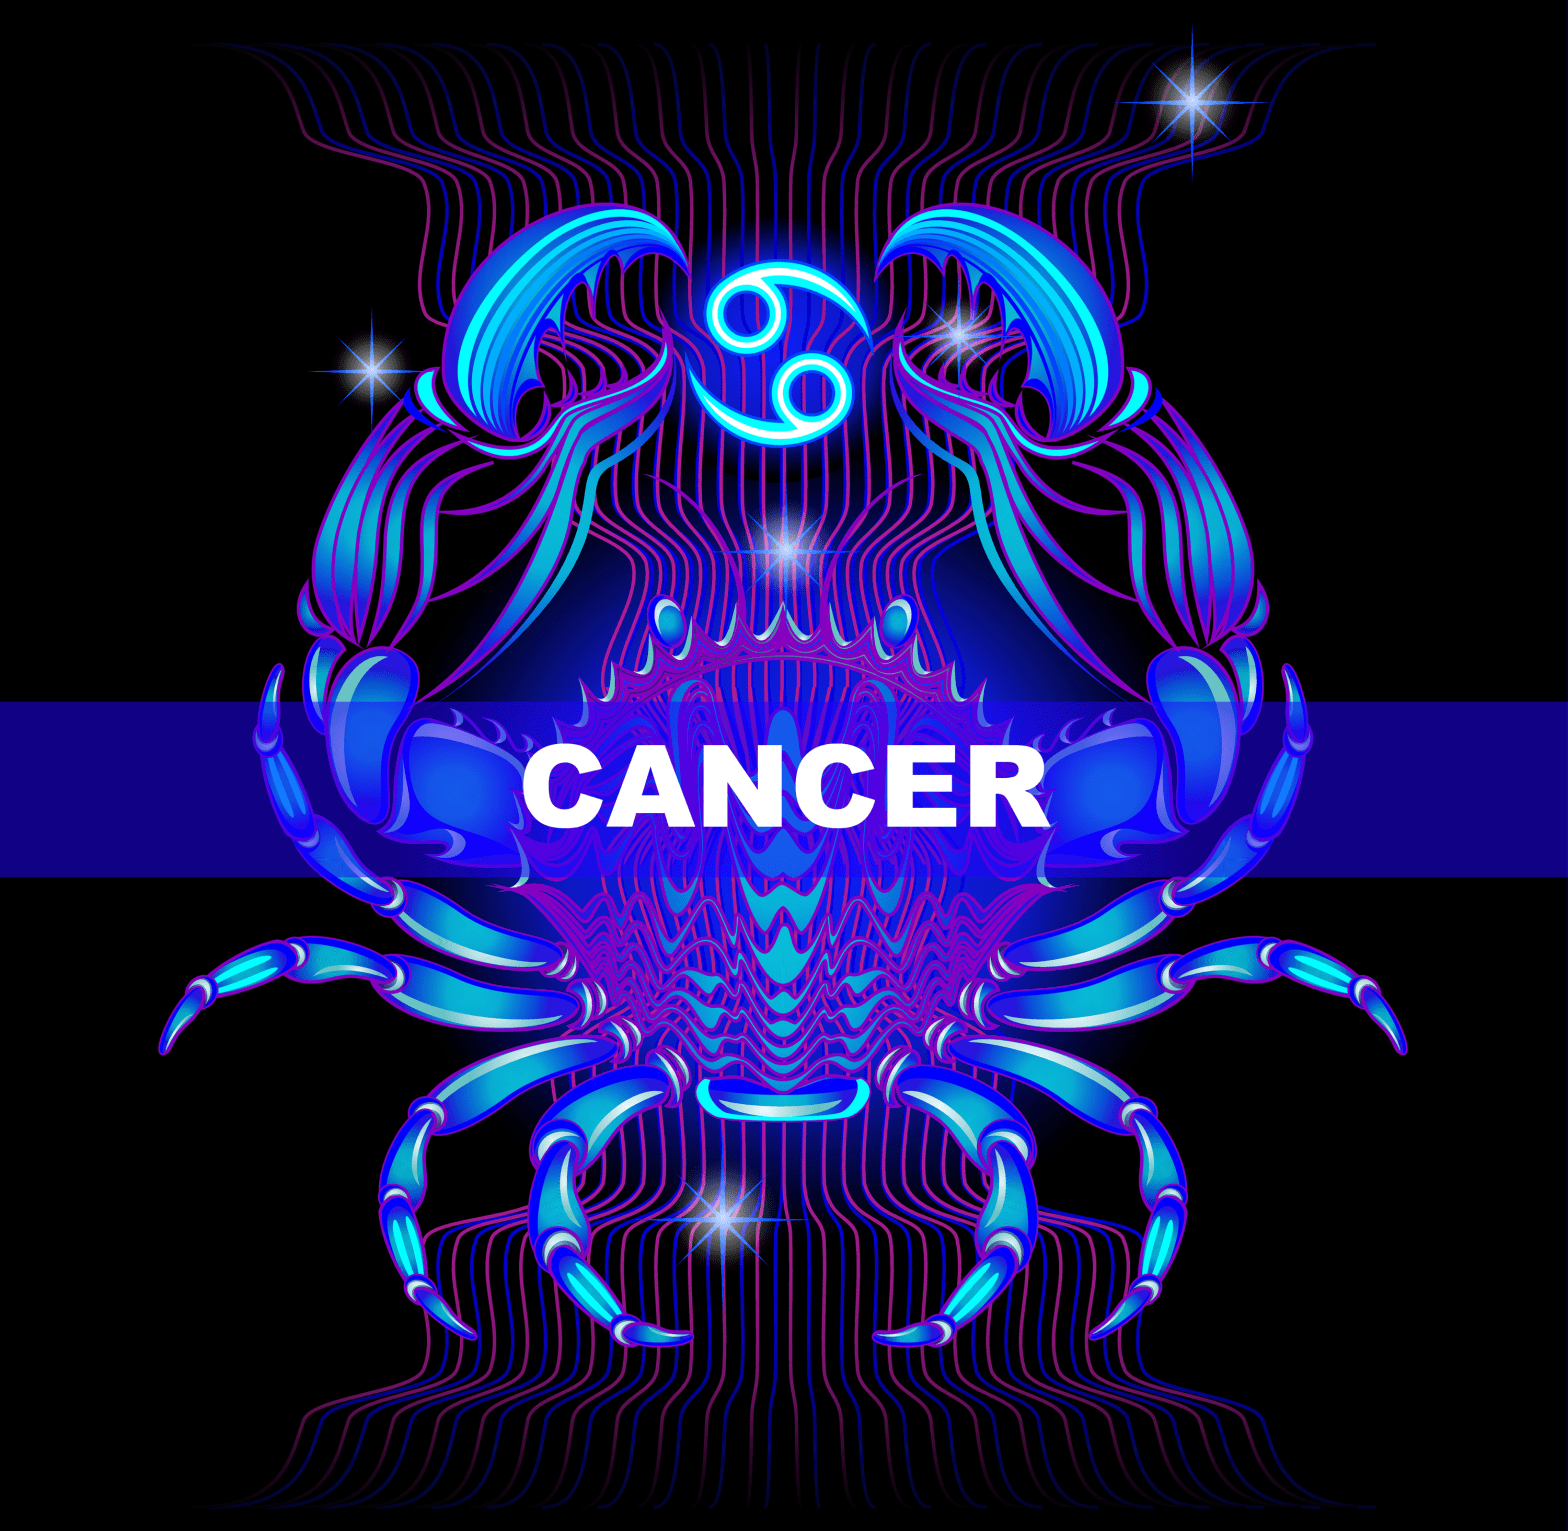 astrological horoscope for cancer 2020 21 mid year review next 12 months